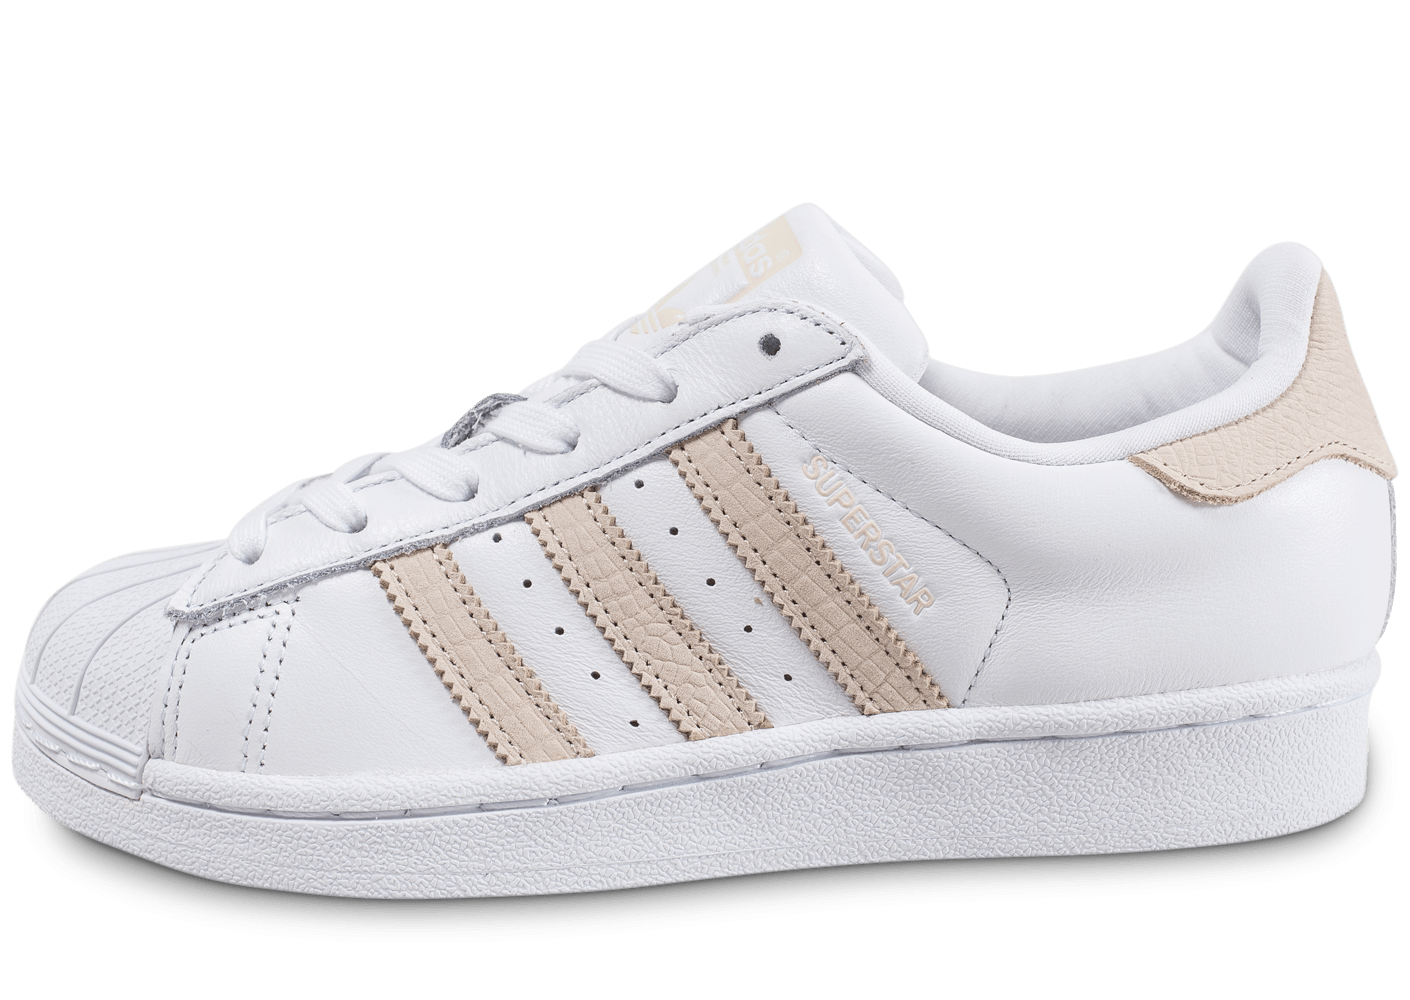 nouveaux styles 4ec26 569f0 purchase adidas superstar blanc and beige 97cef 5e798